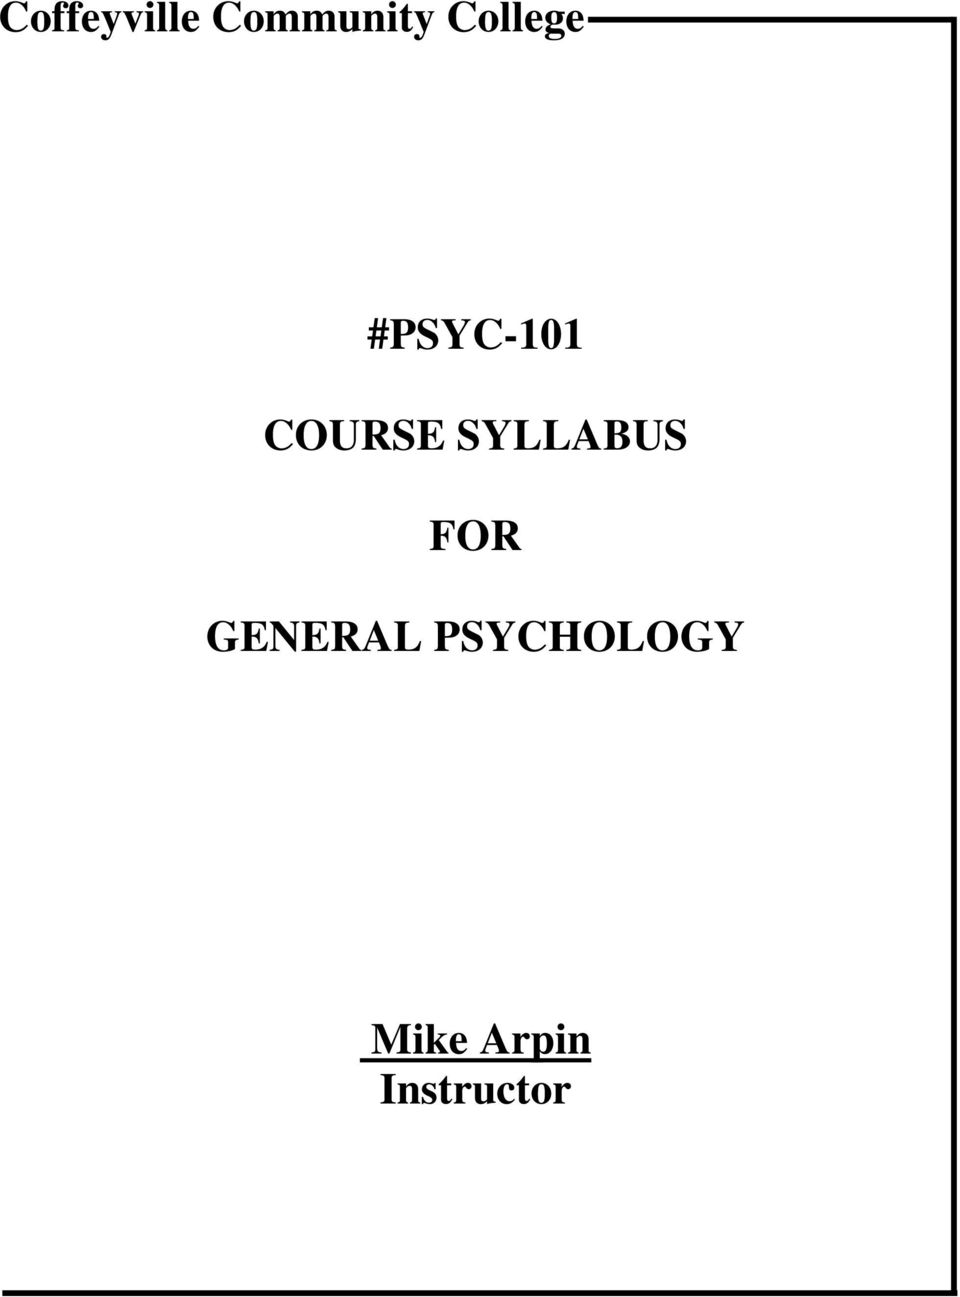 SYLLABUS FOR GENERAL